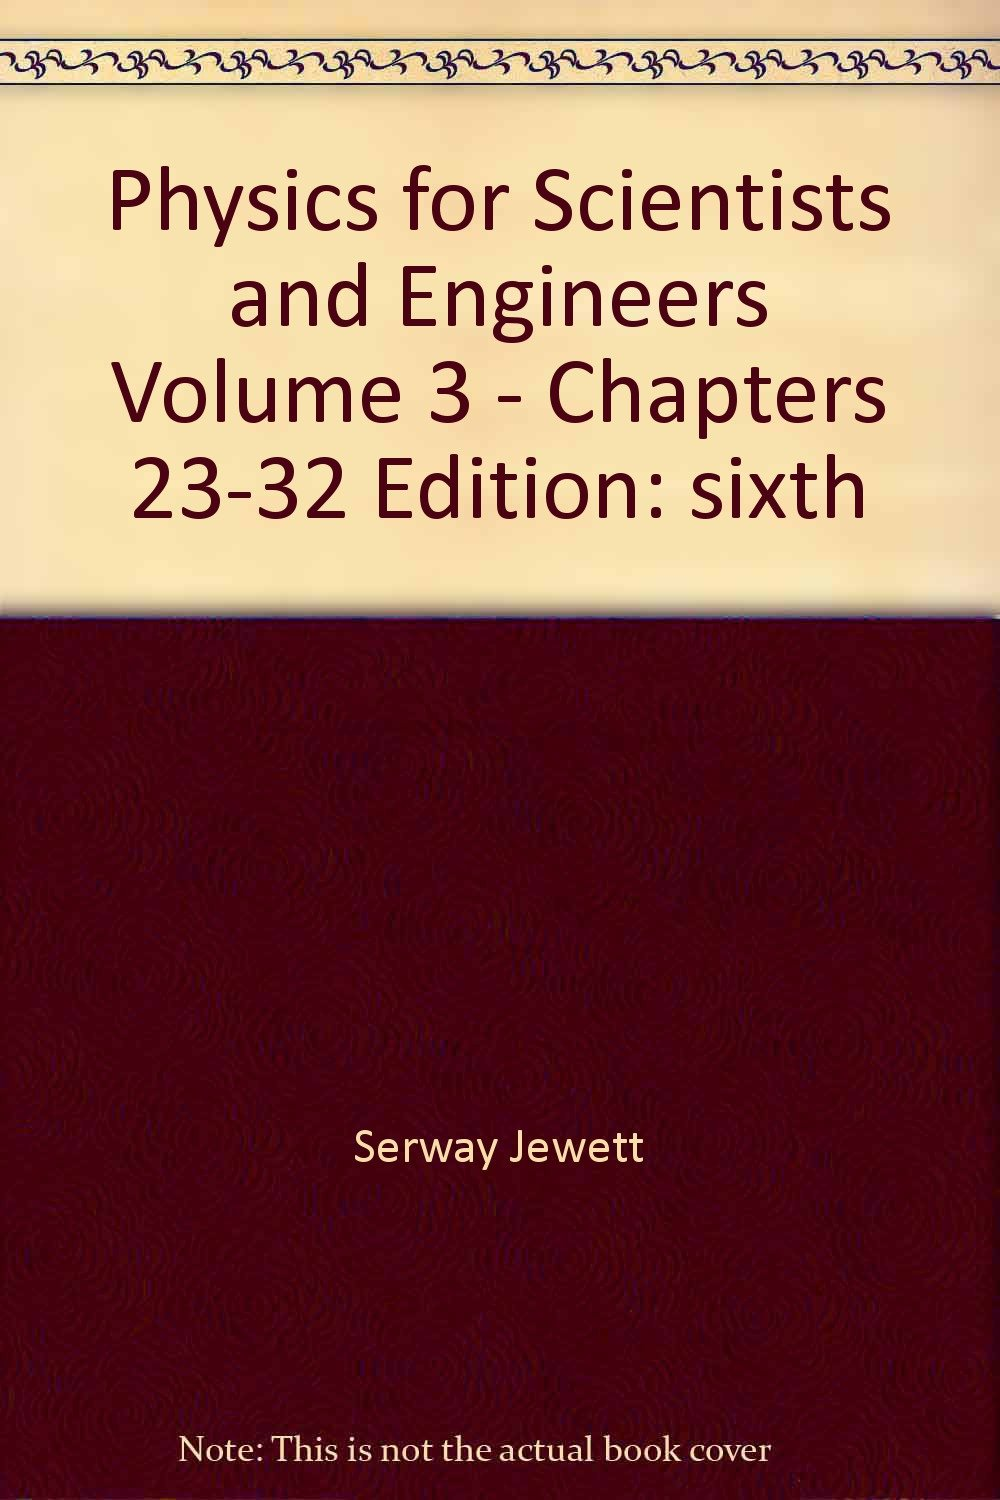 Download Physics for Scientists and Engineers, Volume 3 - Chapters 23-32 (3) ebook